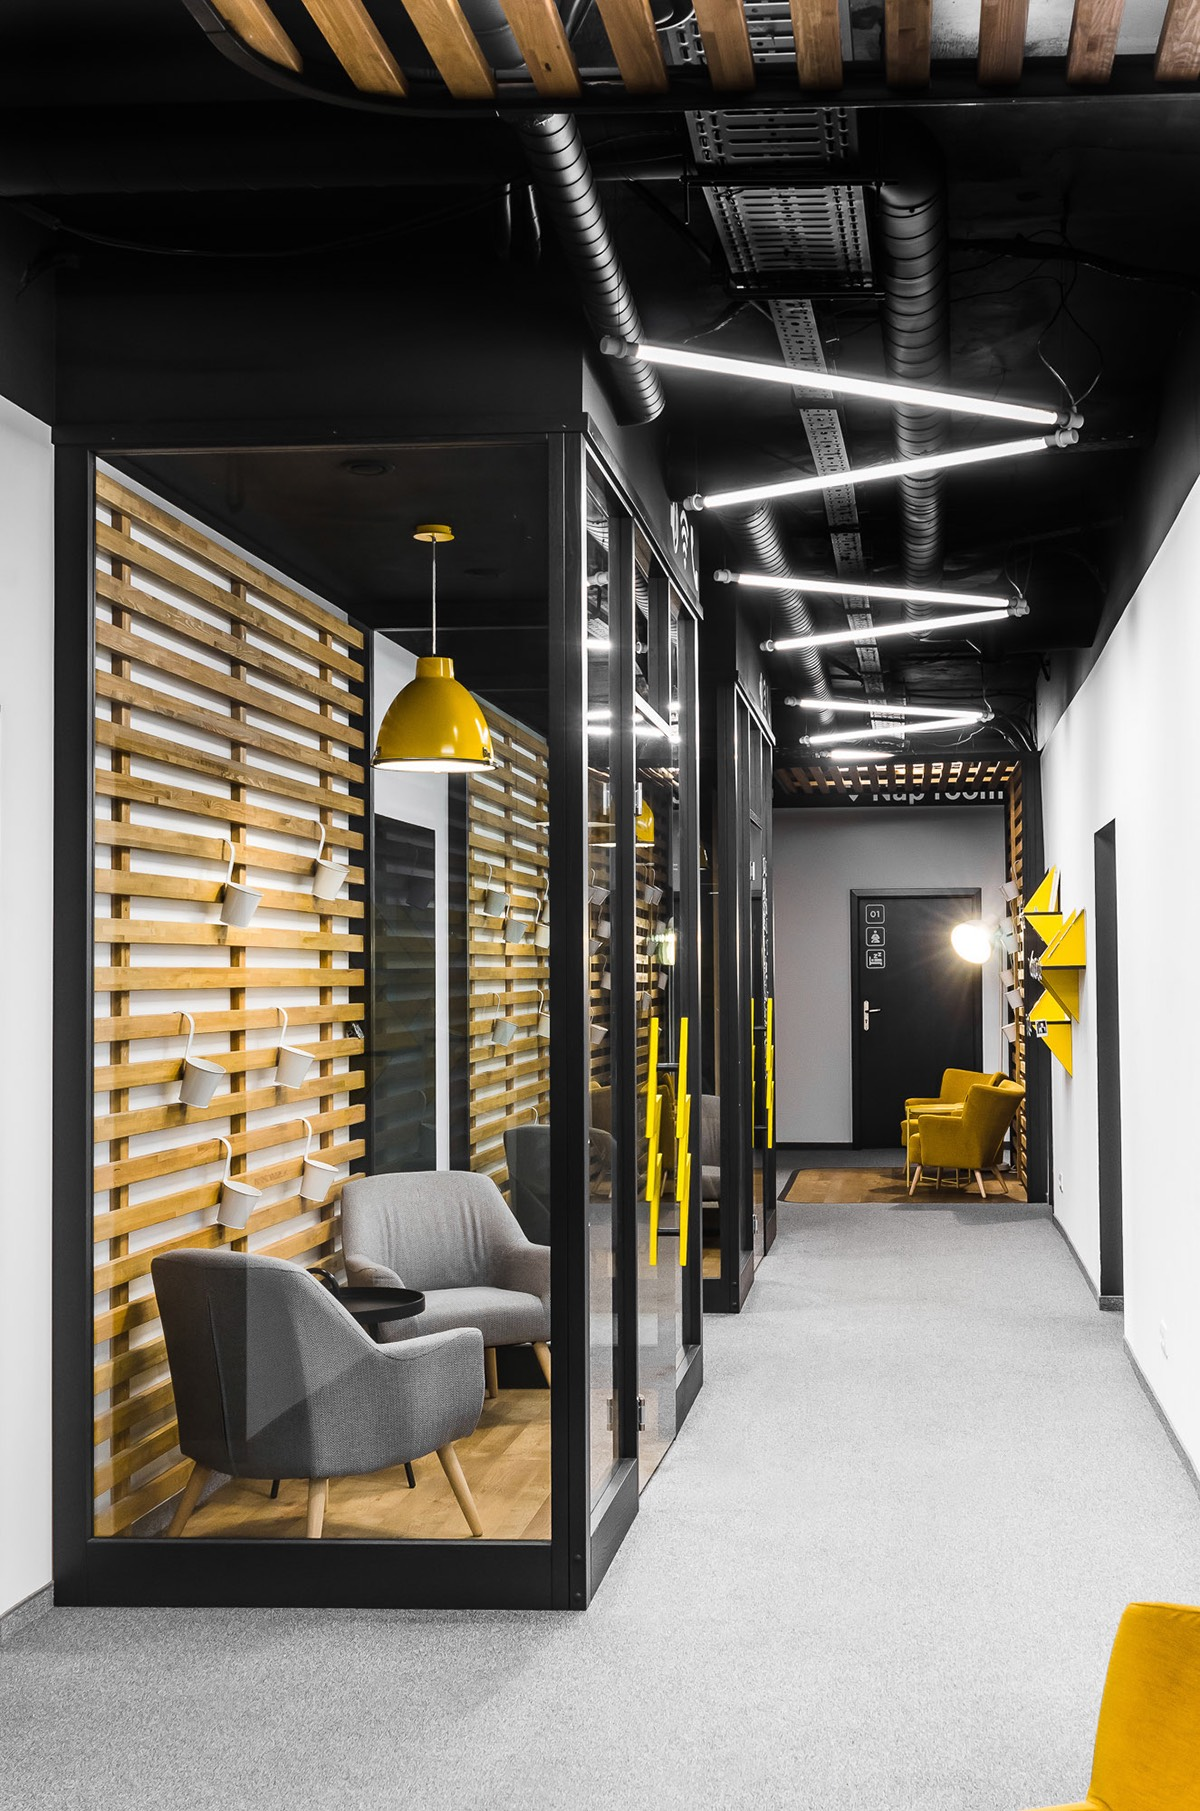 Conference Room Interior Design: Inside Droids On Roids' Cool Wroclaw Office